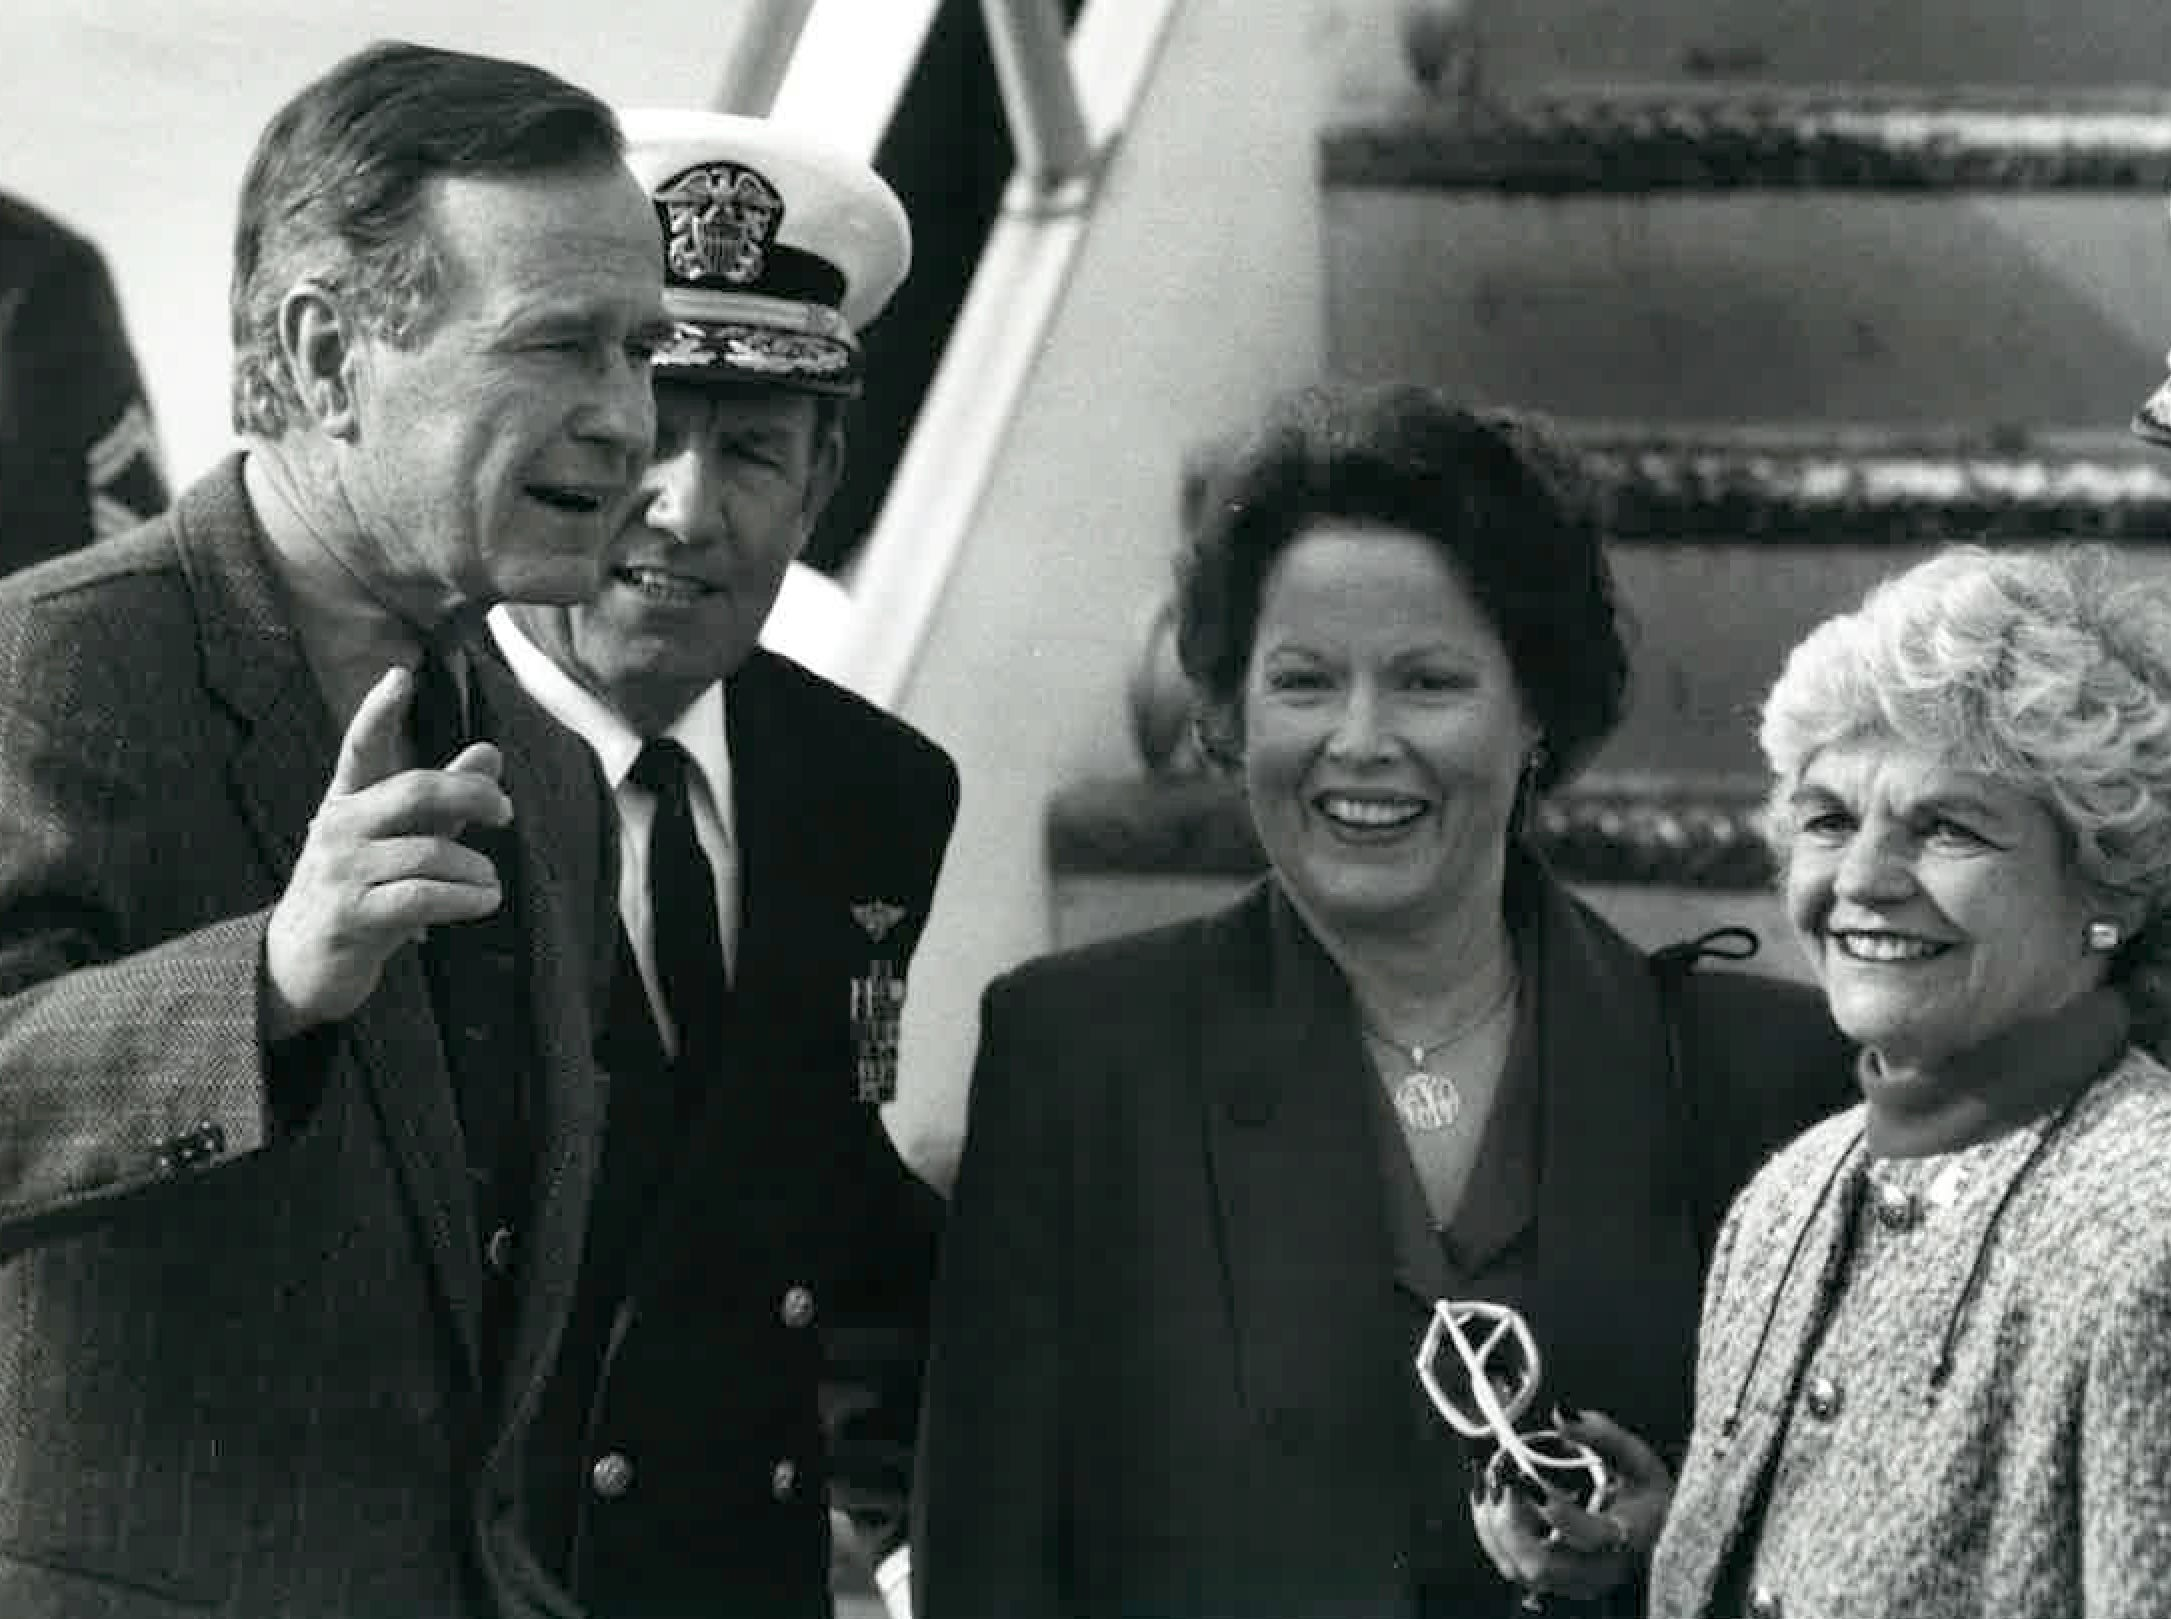 President George H.W. Bush (from left), Rear Admiral Jimmie Taylor, wife Annette Taylor and Corpus Christi Mayor Betty Turner in December 1989. Turner and the Taylors greeted the president as he arrived at Naval Air Station Corpus Christi for a local fishing trip, then a quail hunting trip near Beeville.